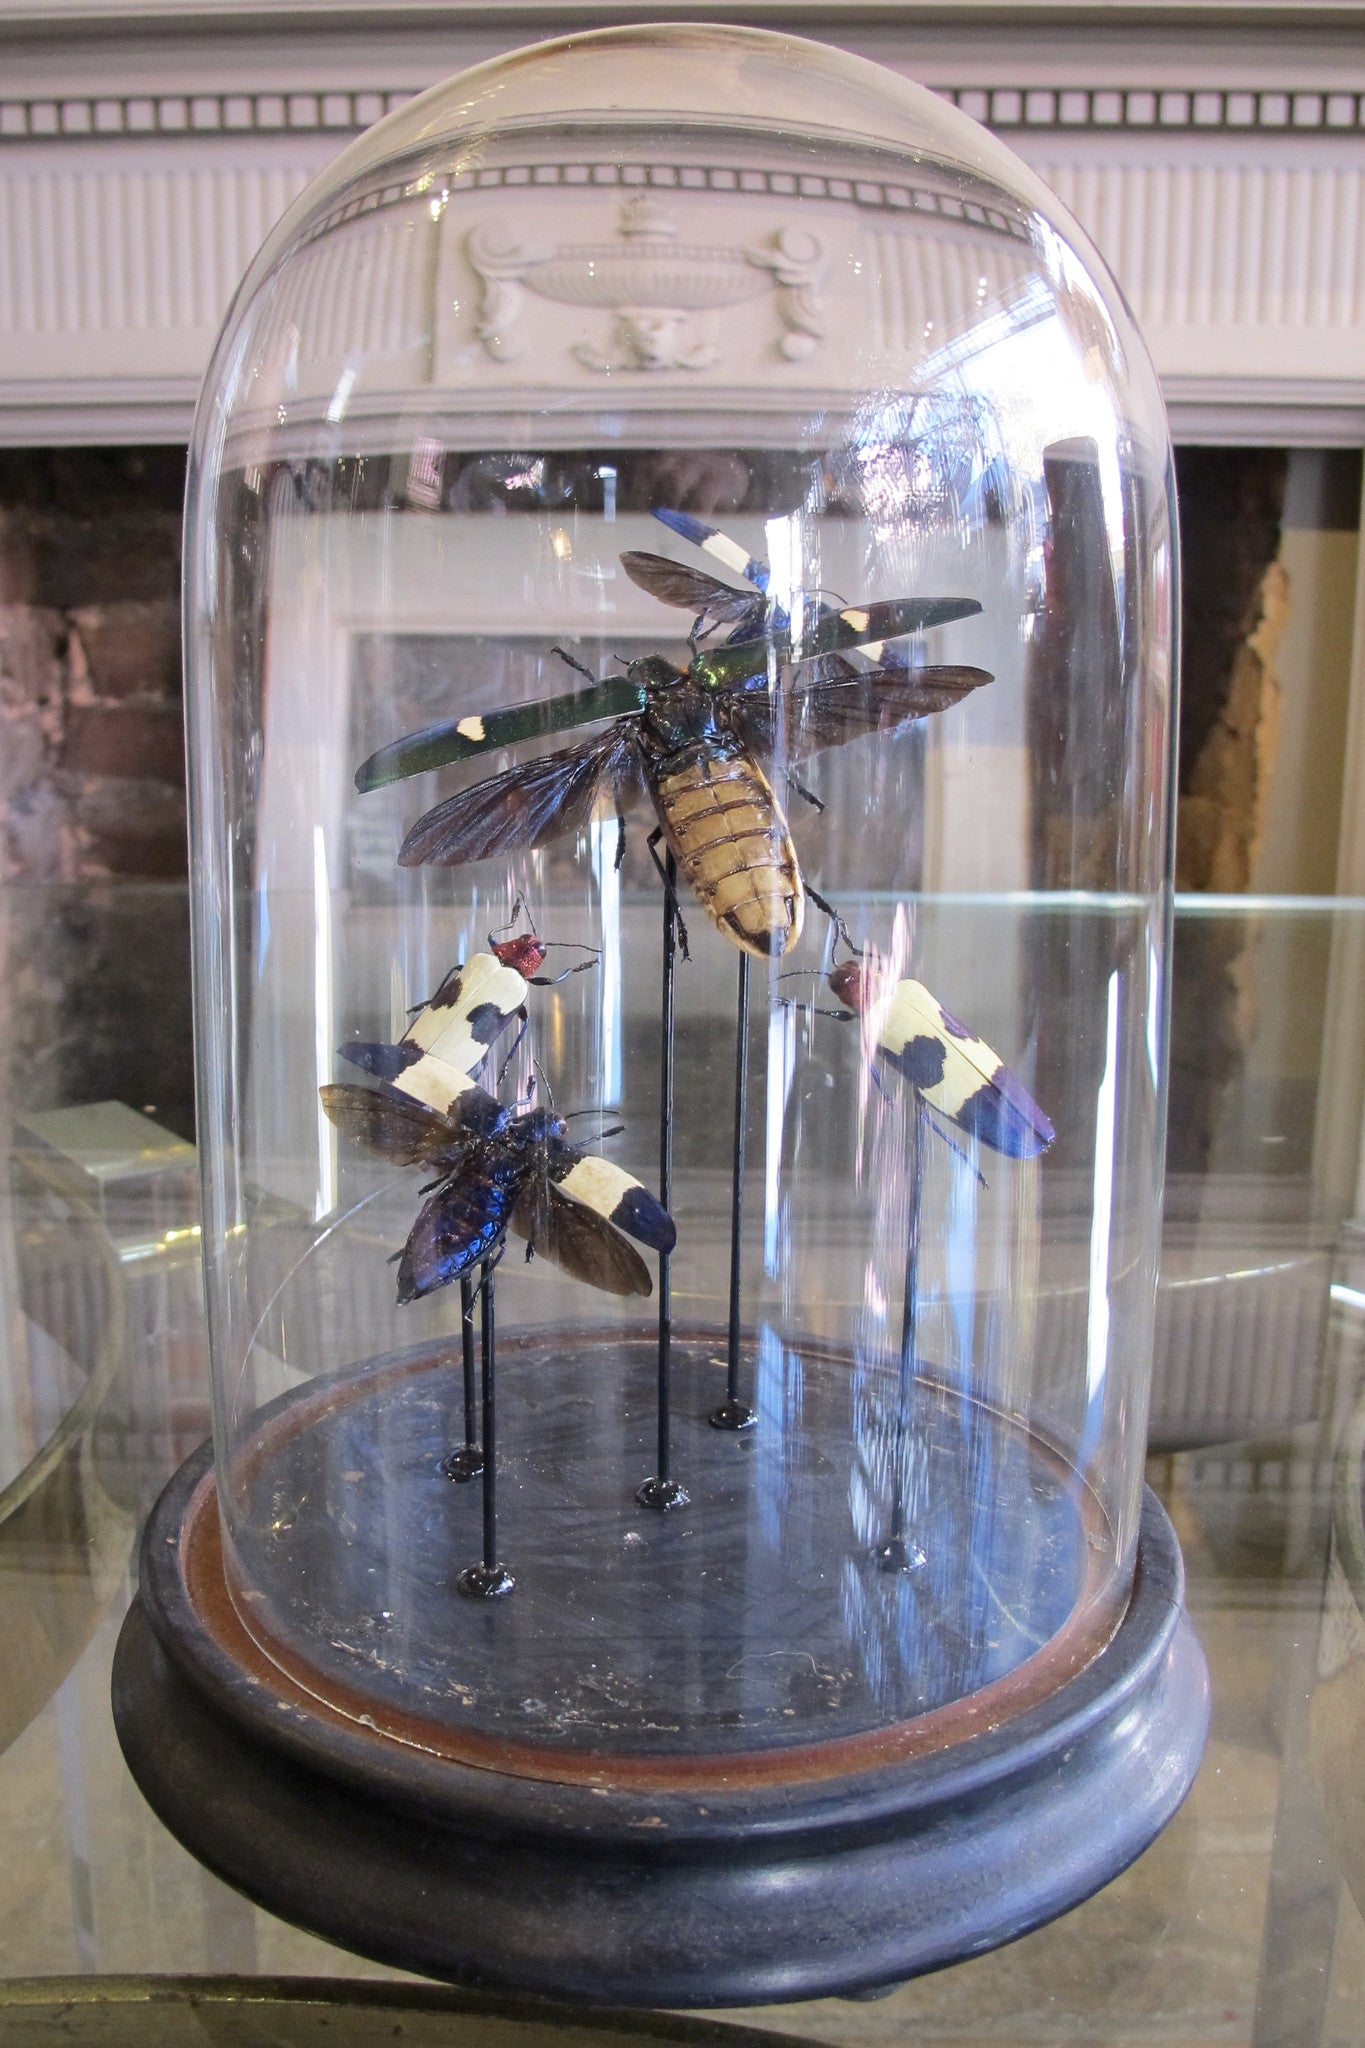 X Mounted Jewel Beetles in a Antique Bell Jar